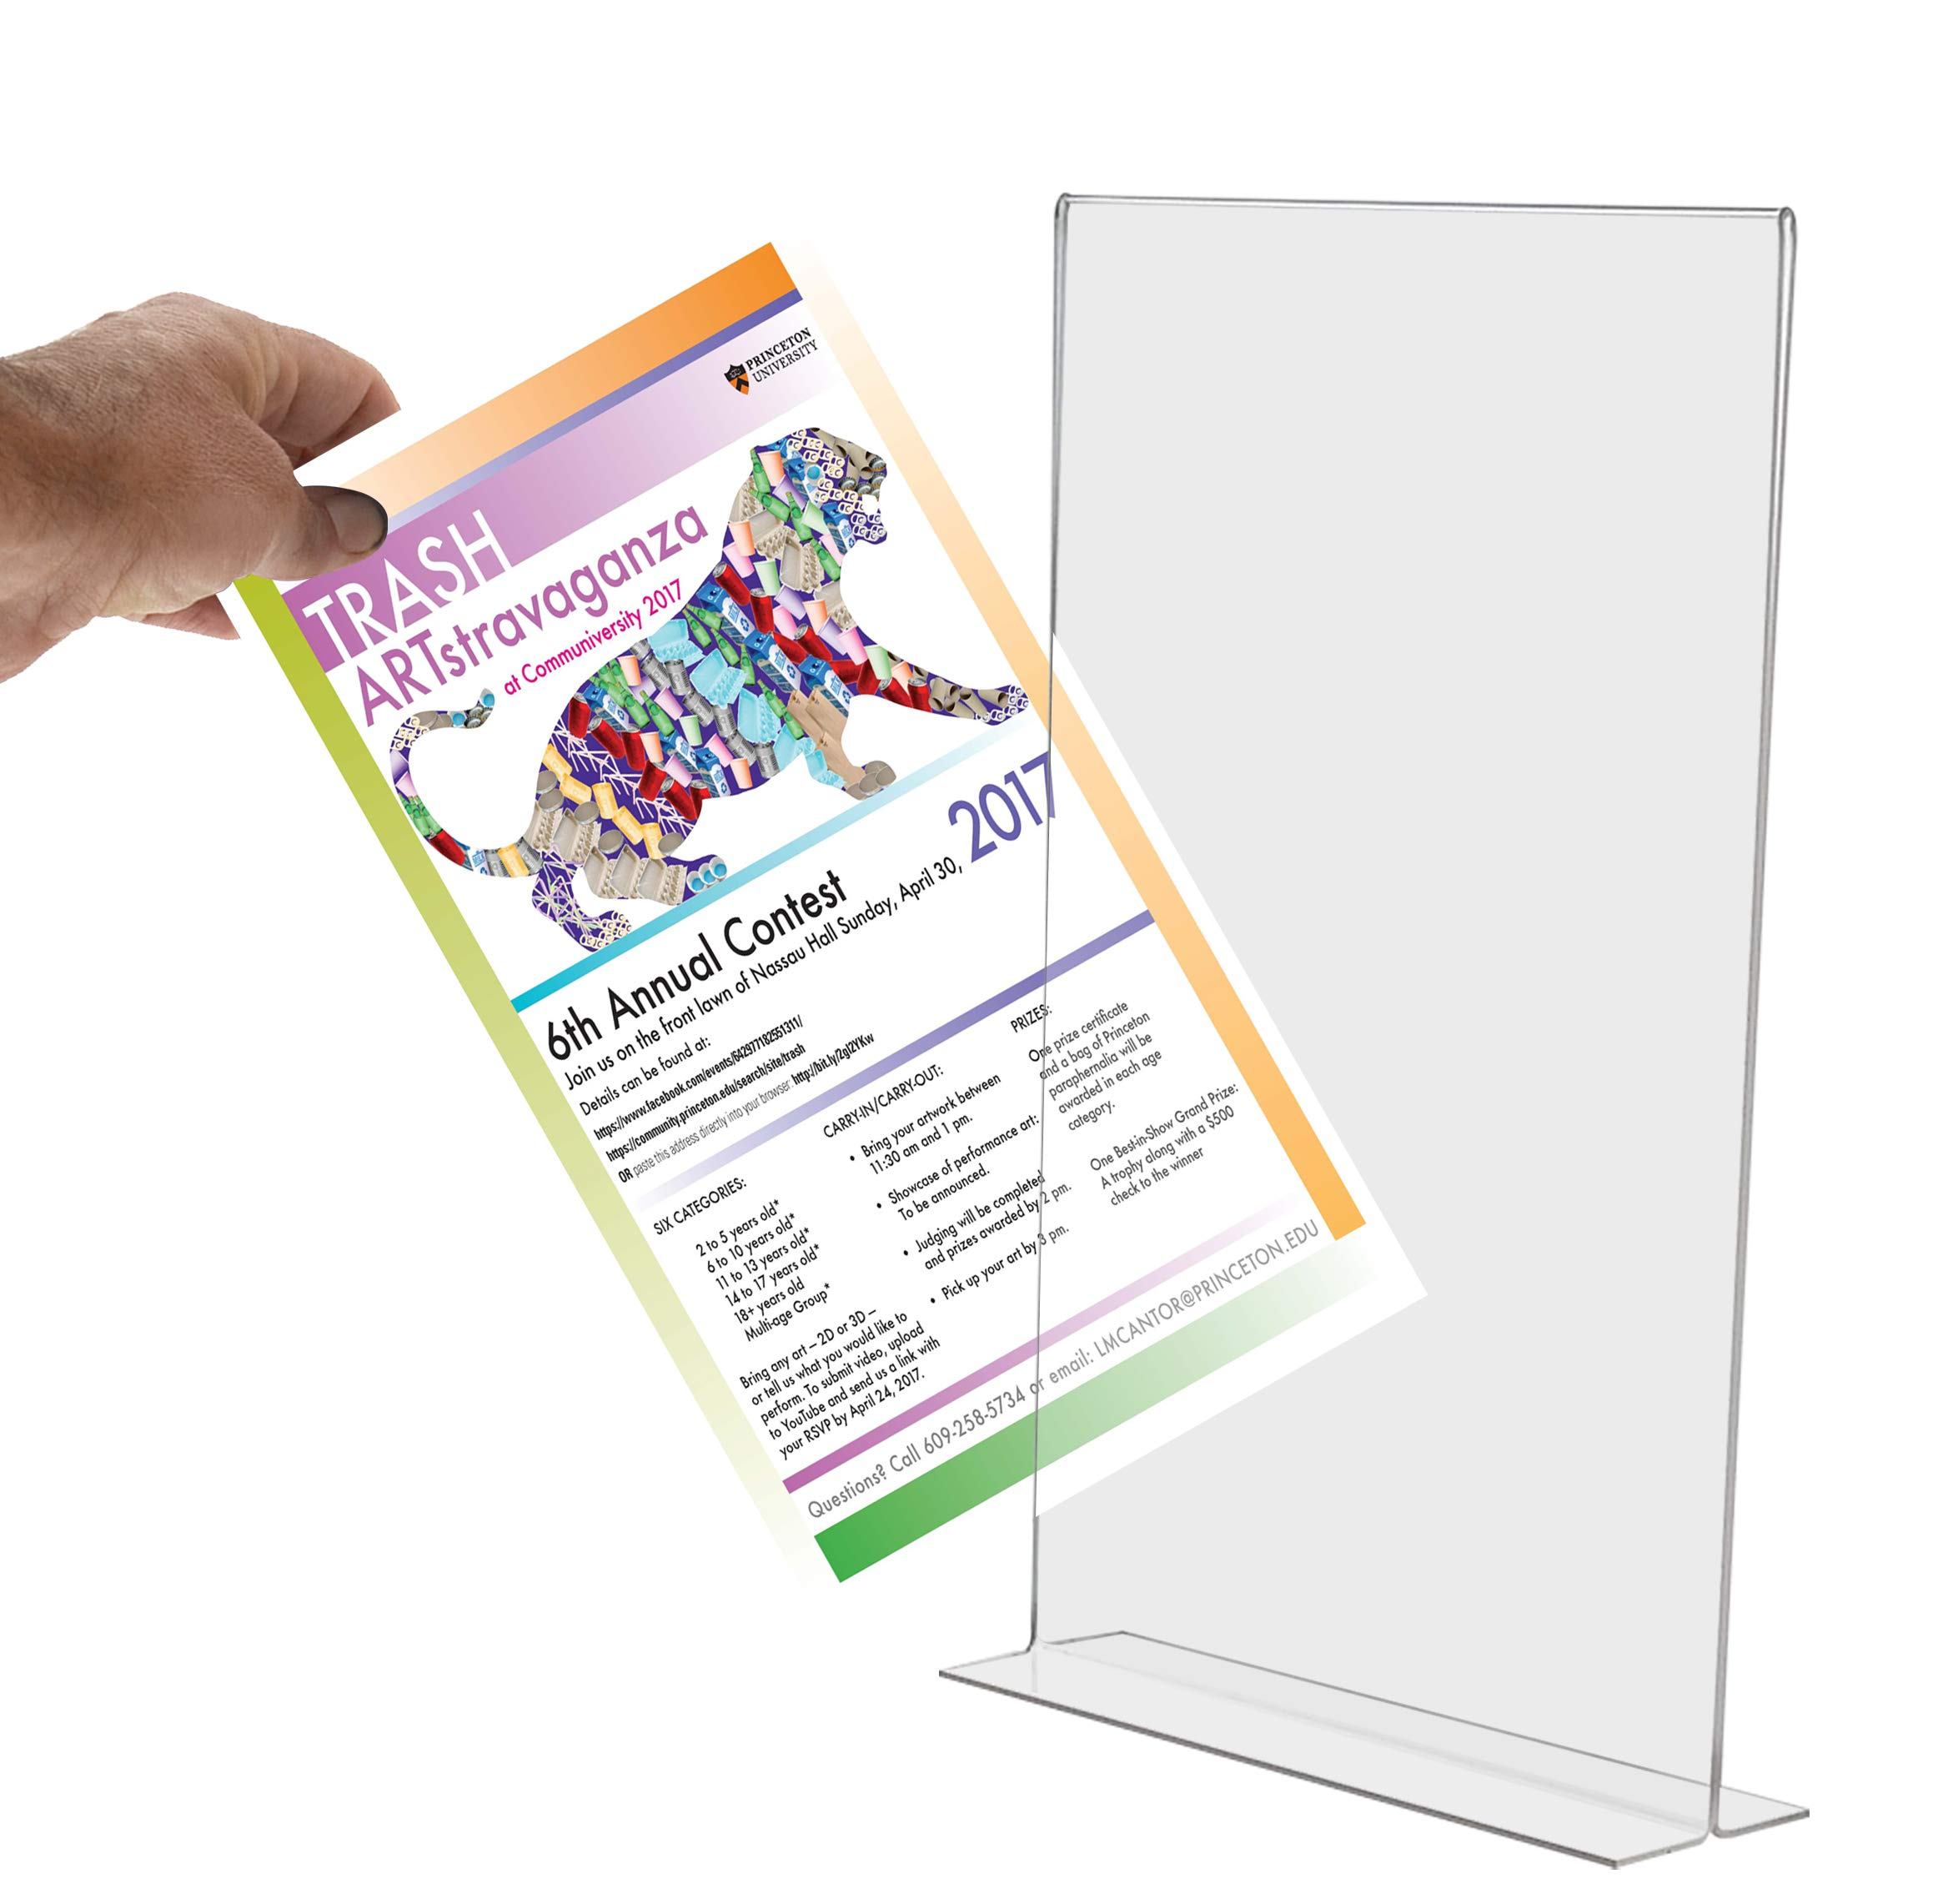 Marketing Holders Literature Flyer Poster Frame Letter Notice Menu Pricing Deli Table Tent Countertop Expo Event Sign Holder Display Stand Double Sided Bottom Loading 11''w x 17''h Pack of 4 by Marketing Holders (Image #7)